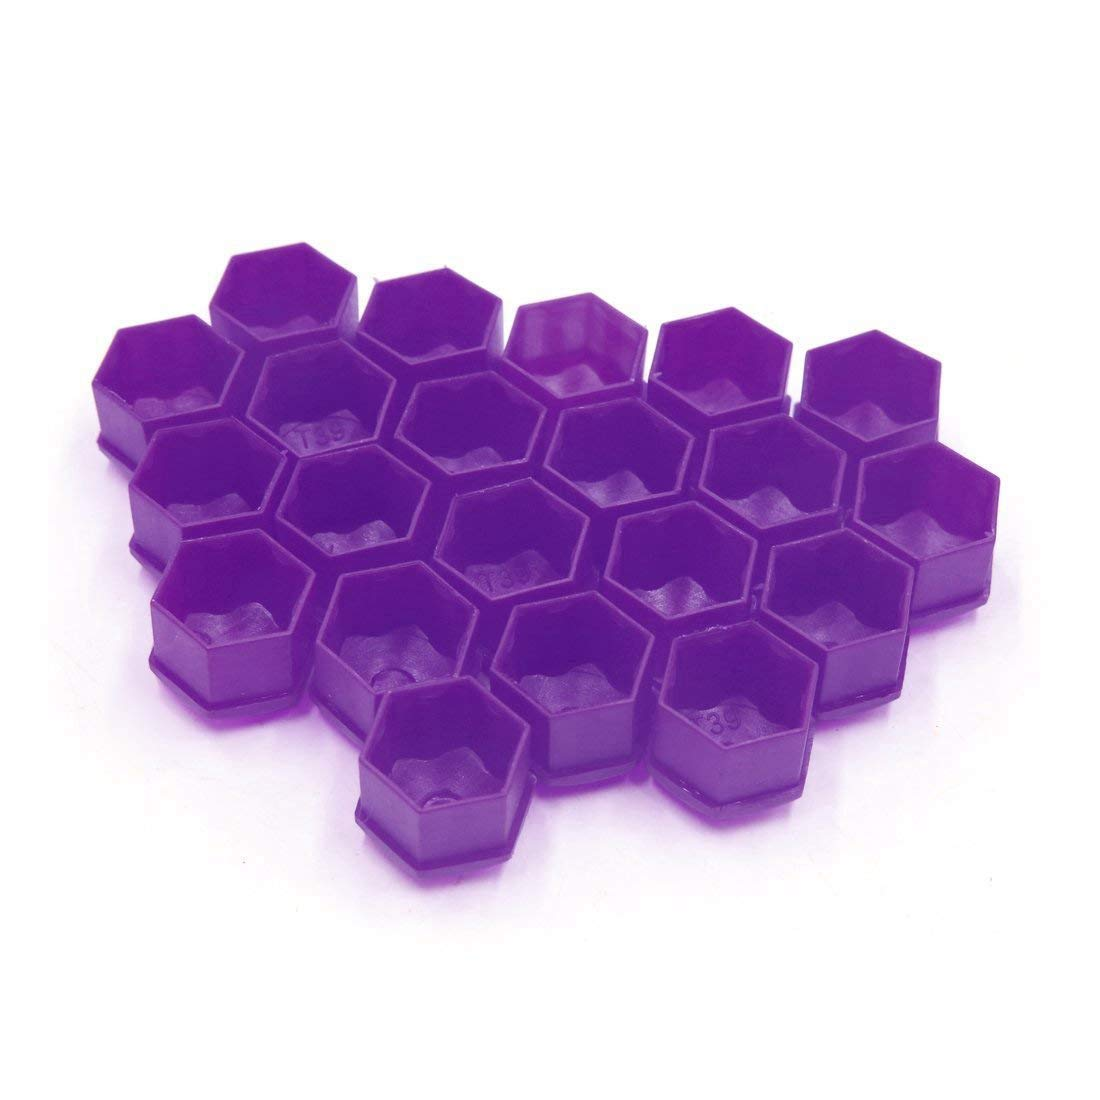 TOOGOO 20 pcs Purple Plastic Wheel Lug Nut Bolt Cover Cap with Removal Tool for Car,19mm by TOOGOO (Image #4)